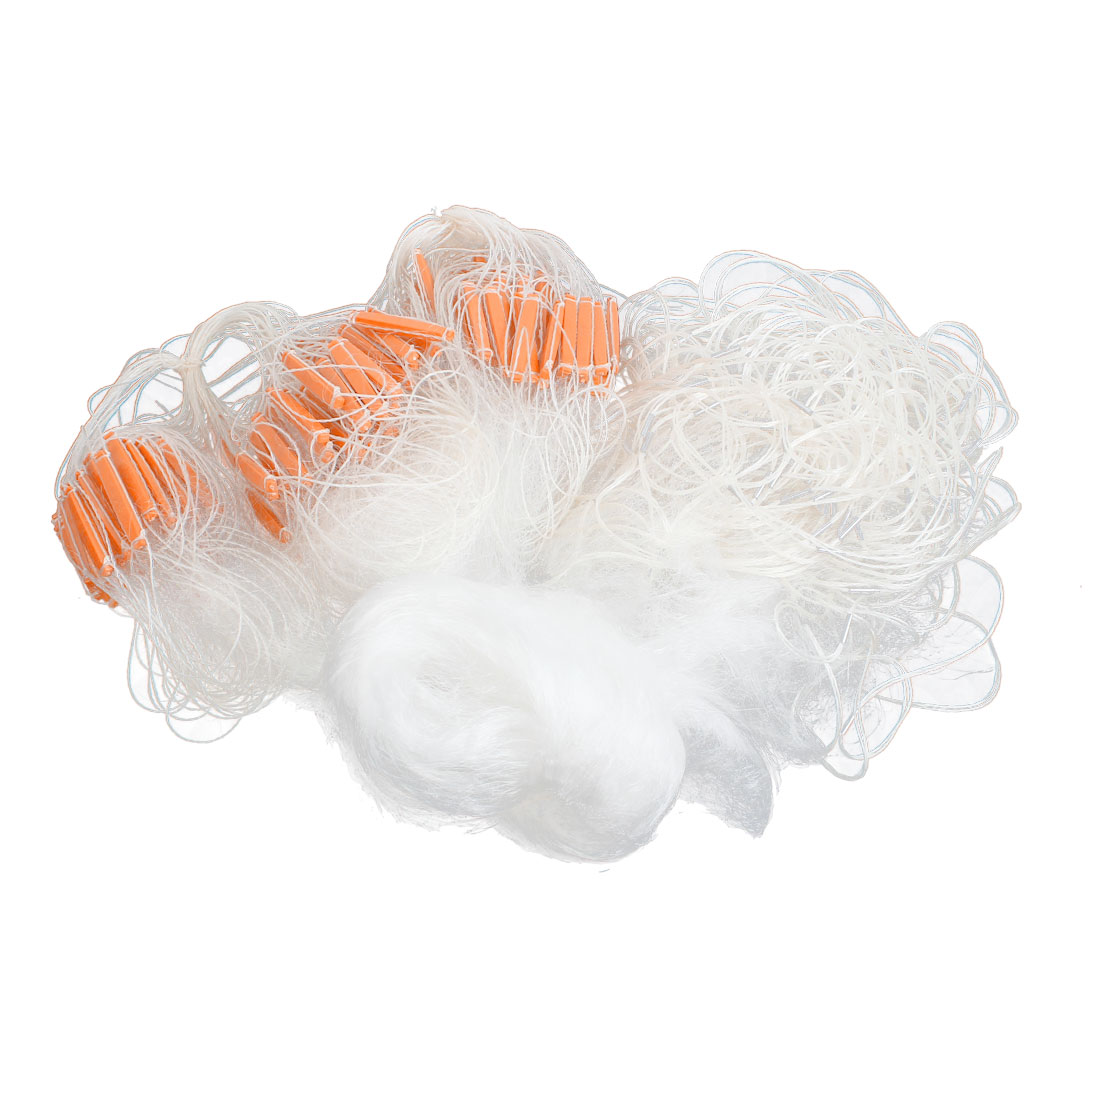 80M 262.5ft Long 0.75M 2.5ft Wide Monofilament Fishing Gill Net w Float Orange White